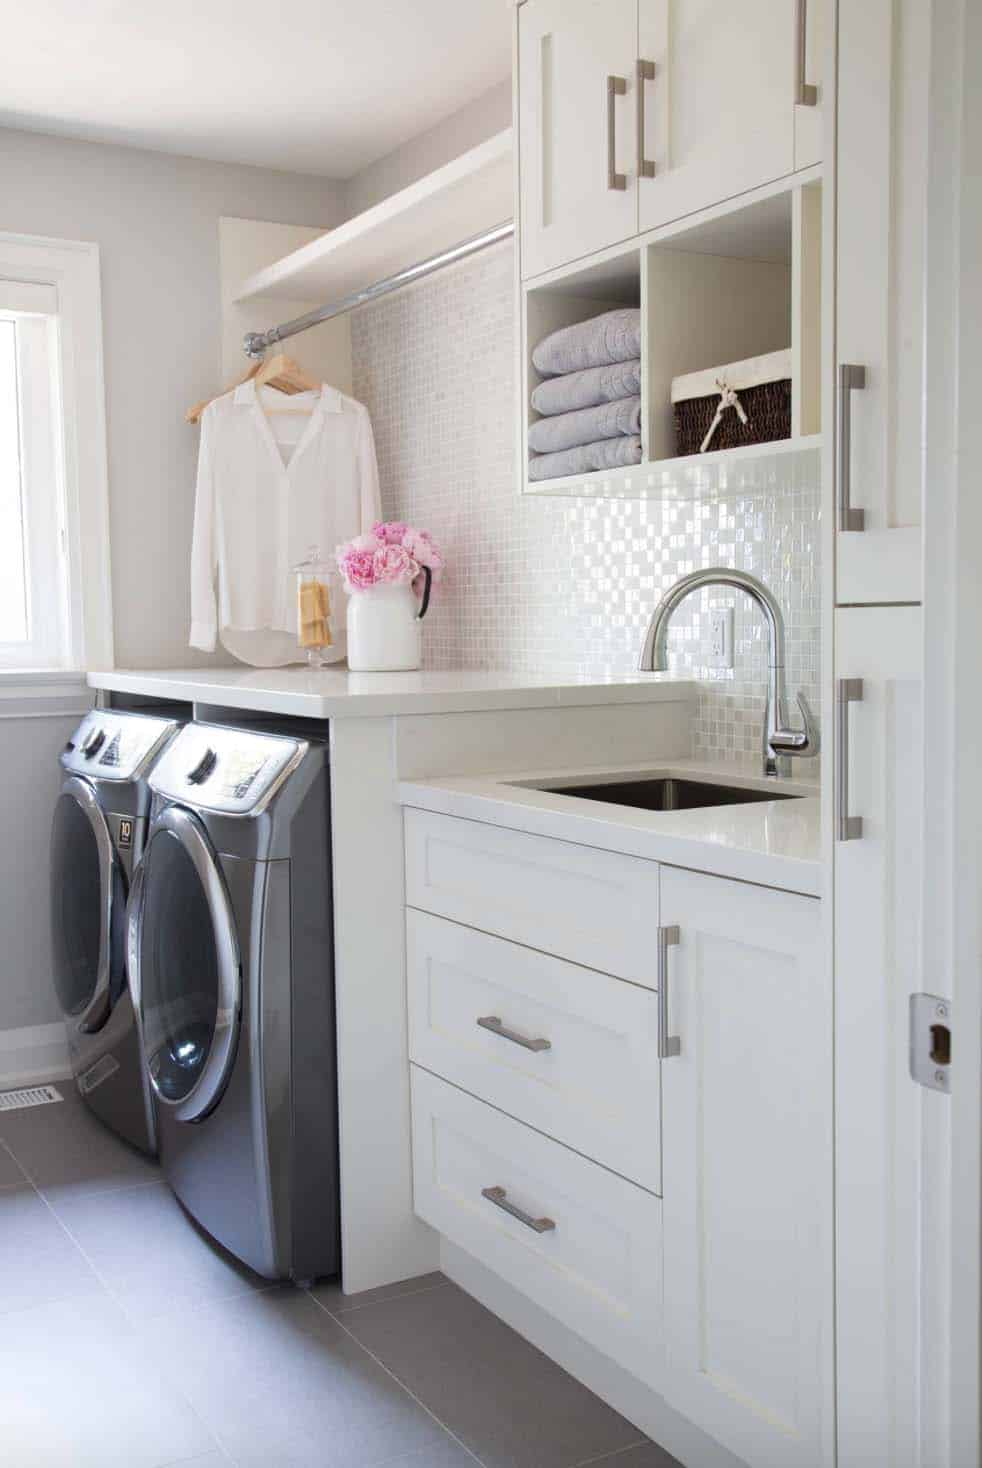 Functional-Stylish Small Laundry Rooms-08-1 Kindesign